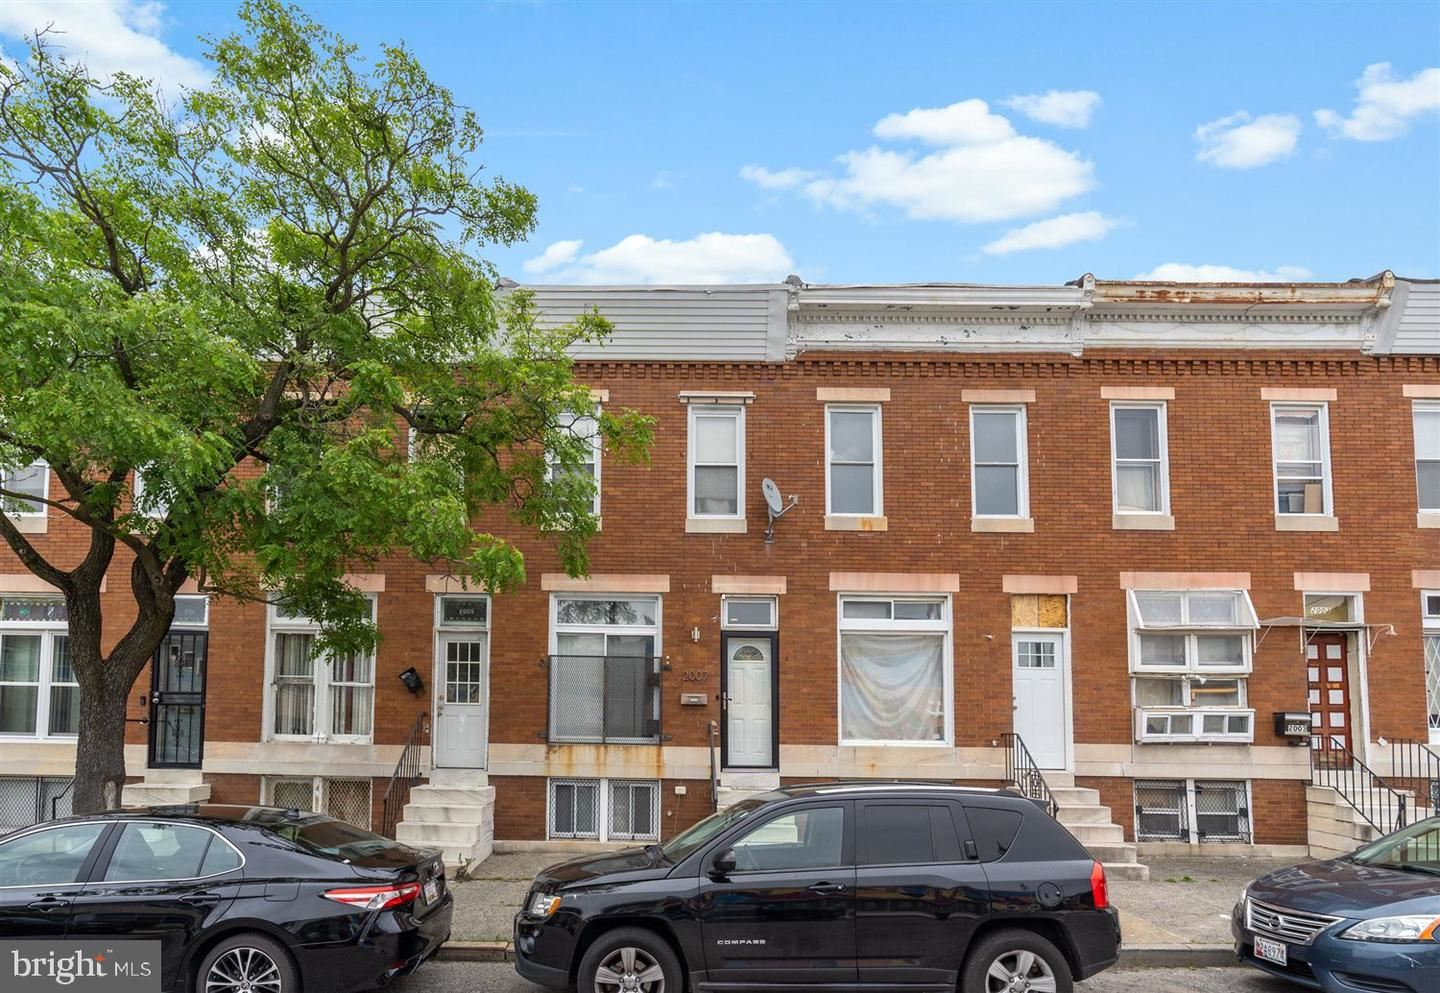 2007 CECIL AVE, Baltimore, MD 21218 - MLS#: MDBA547060